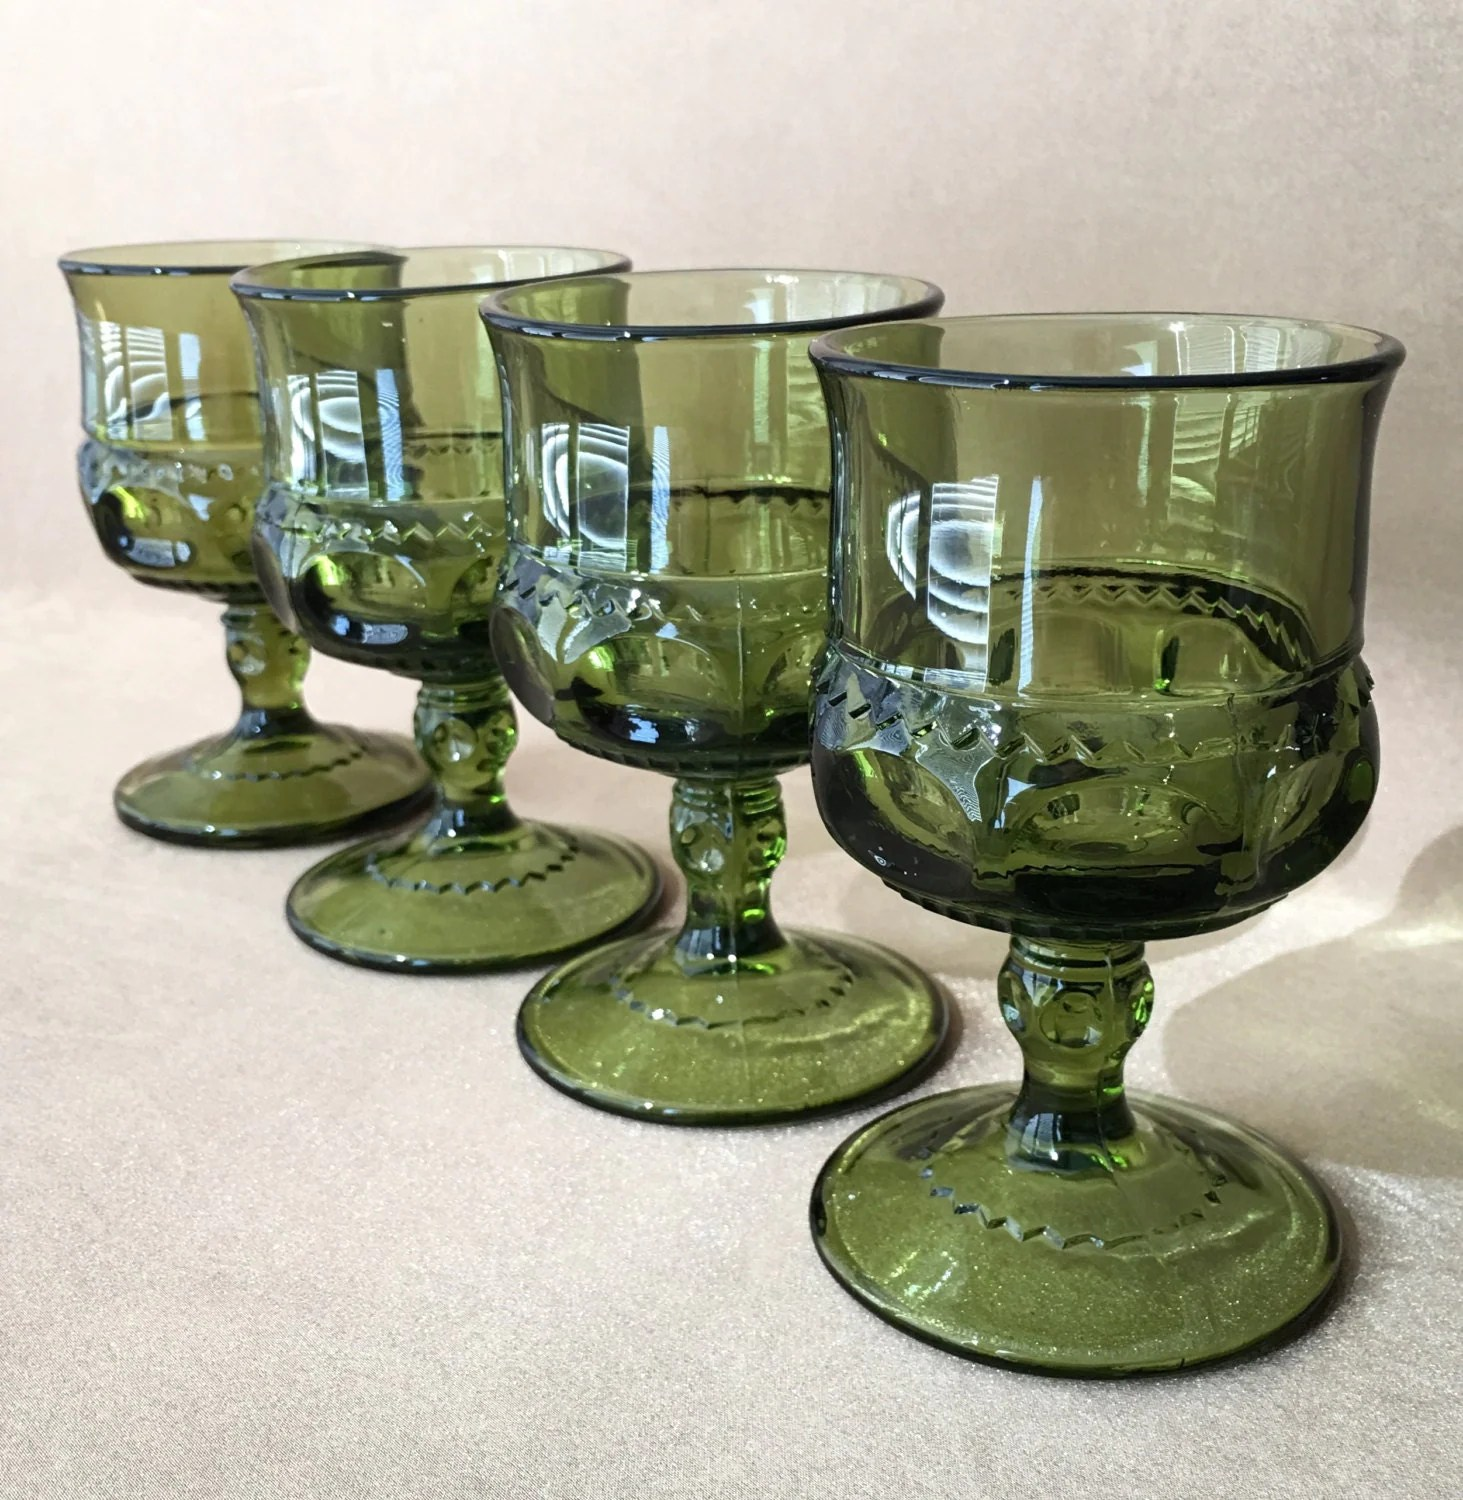 Goblet Style Wine Glasses Green Wine Glasses Kings Crown Goblet Mid Century Style